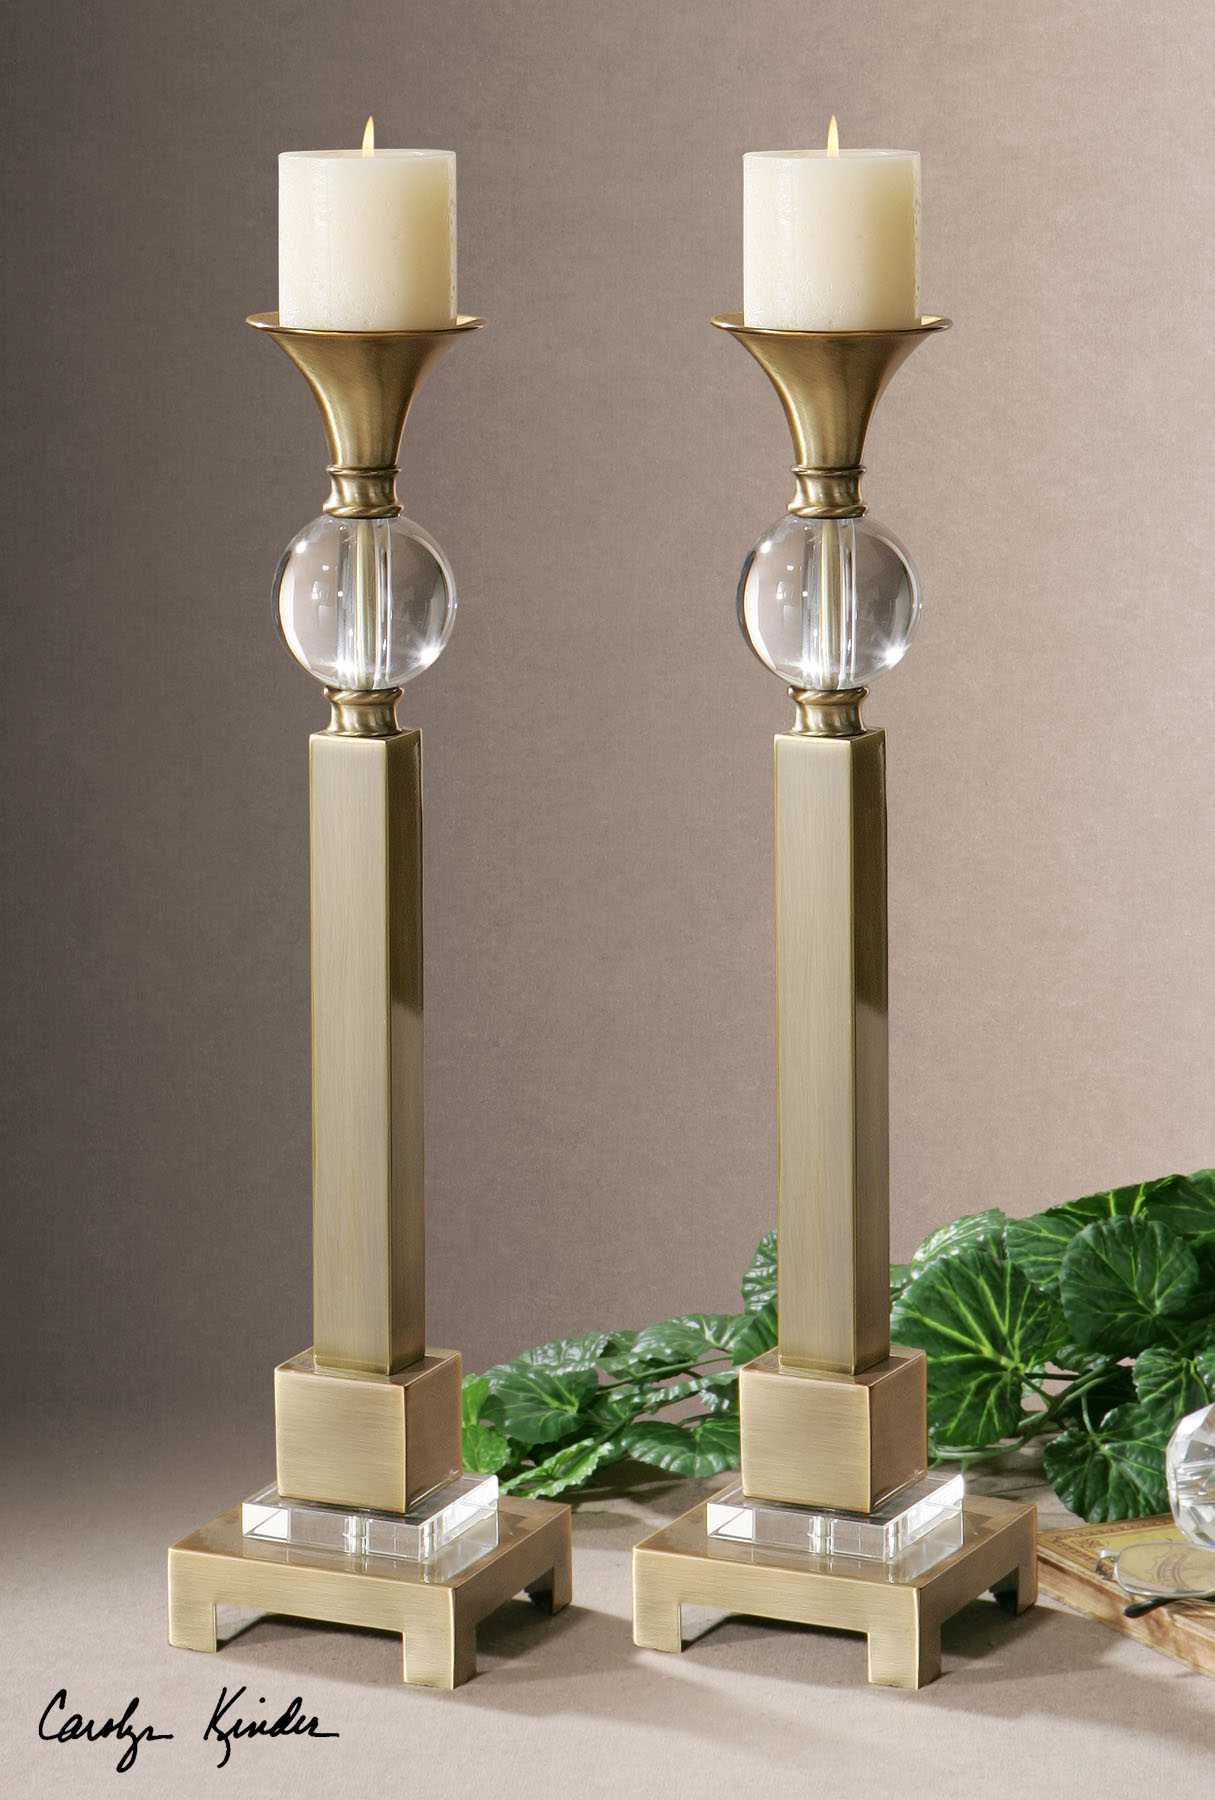 Uttermost Euron Coffee Bronze Candle Holder 2 Piece Set